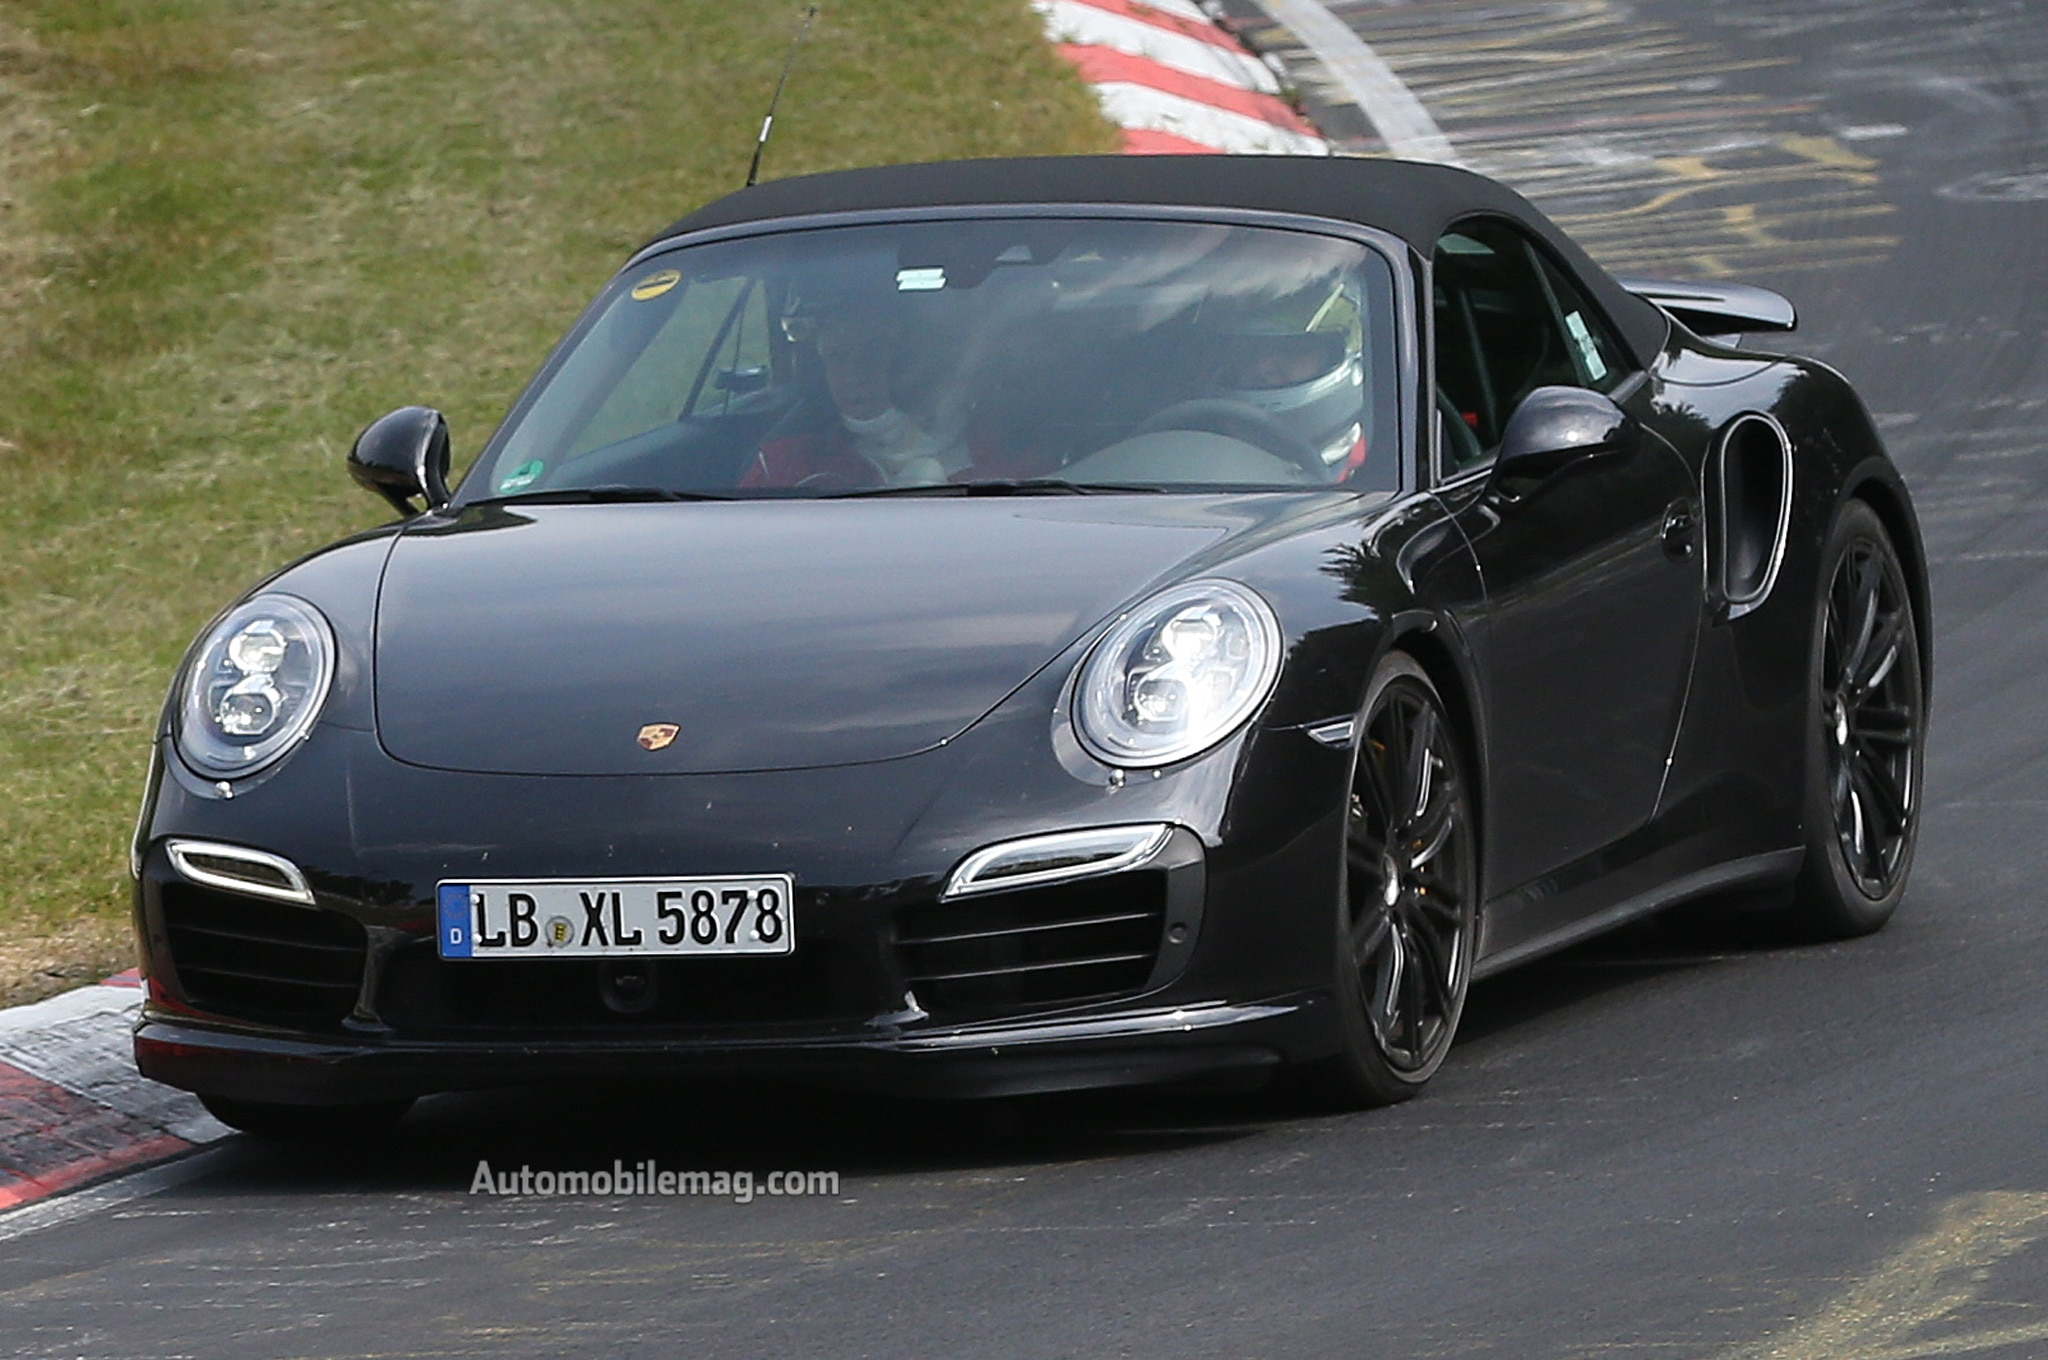 2014 Porsche 911 Turbo Cabriolet Spy Shot Front View1